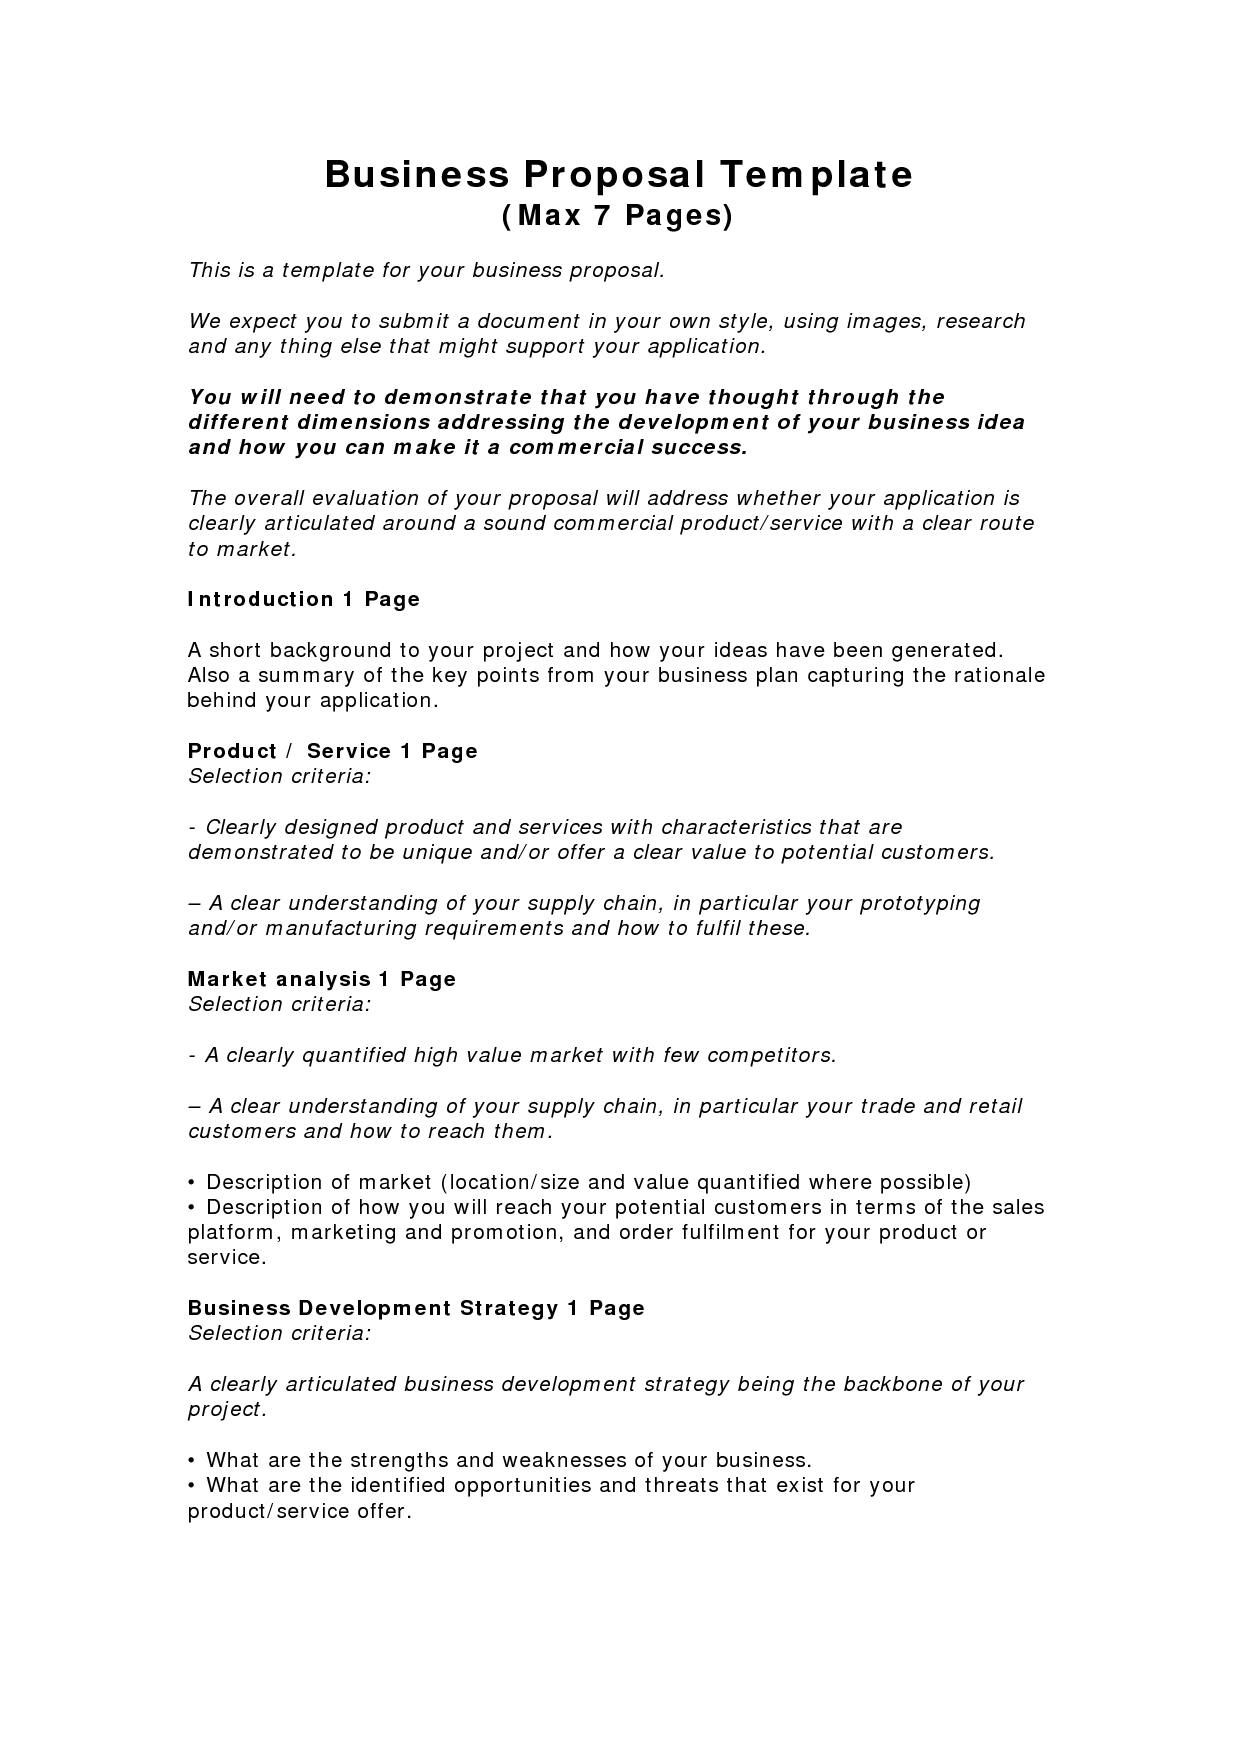 Business Proposal Templates Examples – Business Proposal Template Sample